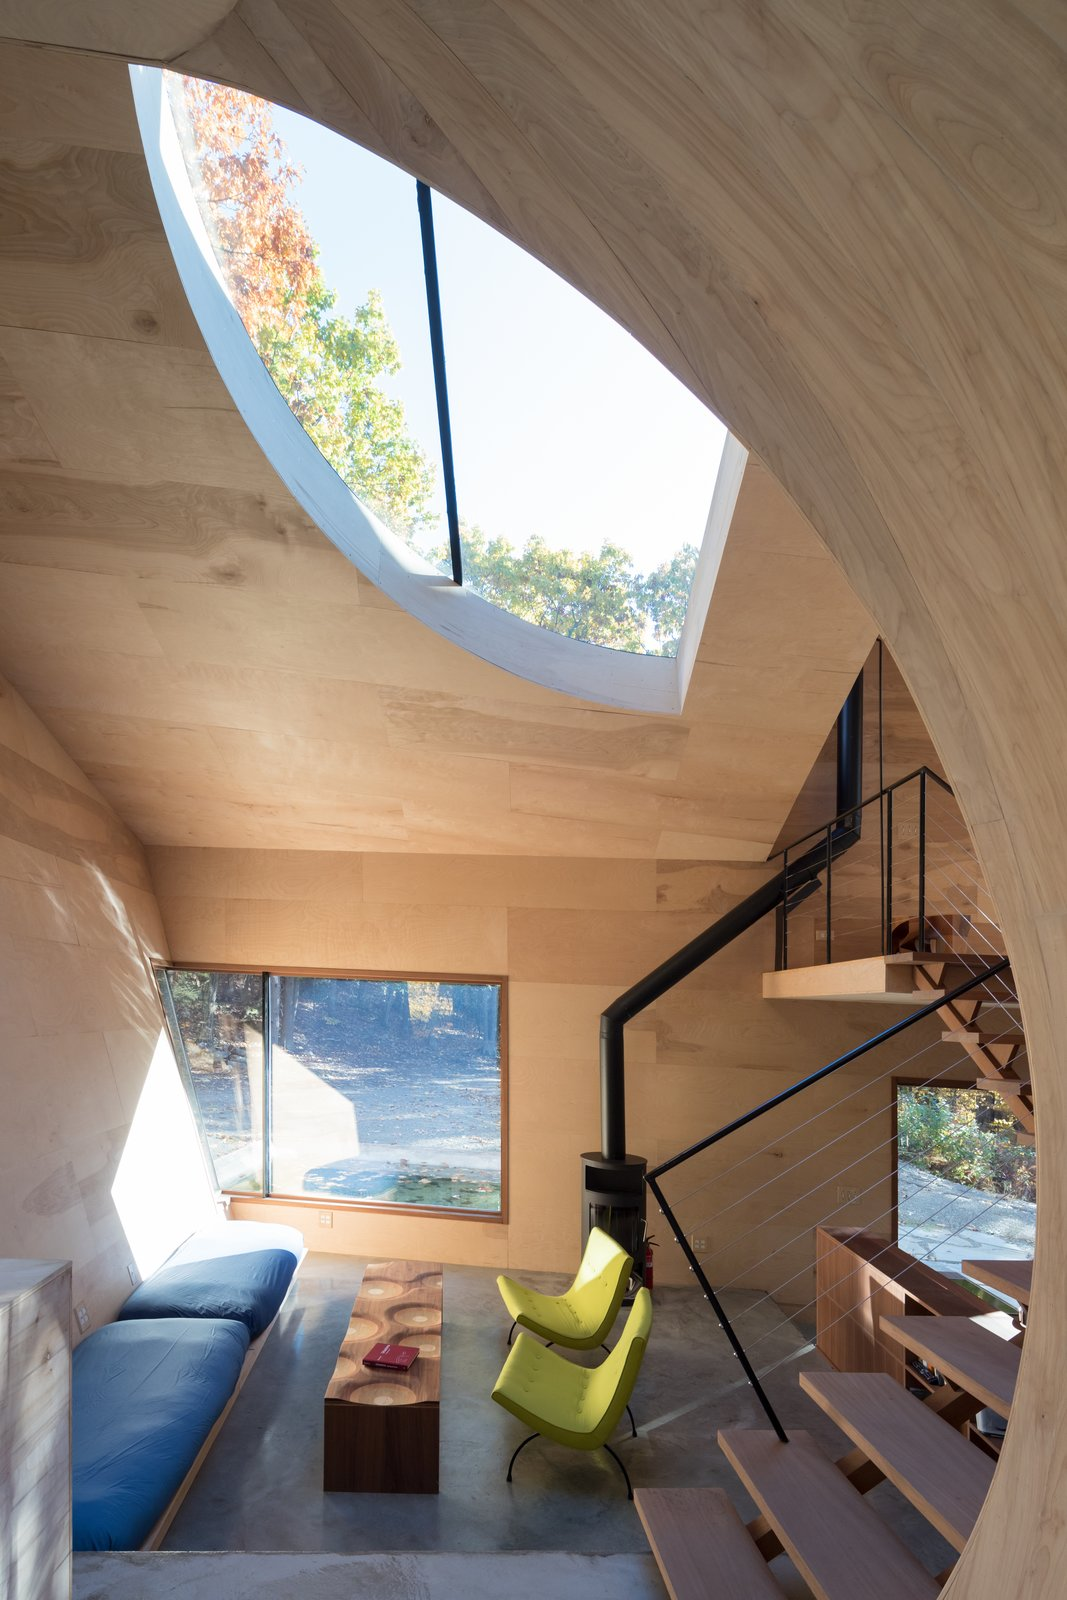 Living Room, Wood Burning Fireplace, Coffee Tables, Bench, Chair, and Concrete Floor Ex of In House by Steven Holl Architects, Interior, Living   Photo 9 of 17 in The Compact, Solar-Powered Ex of In House Sits Lightly Upon the Land